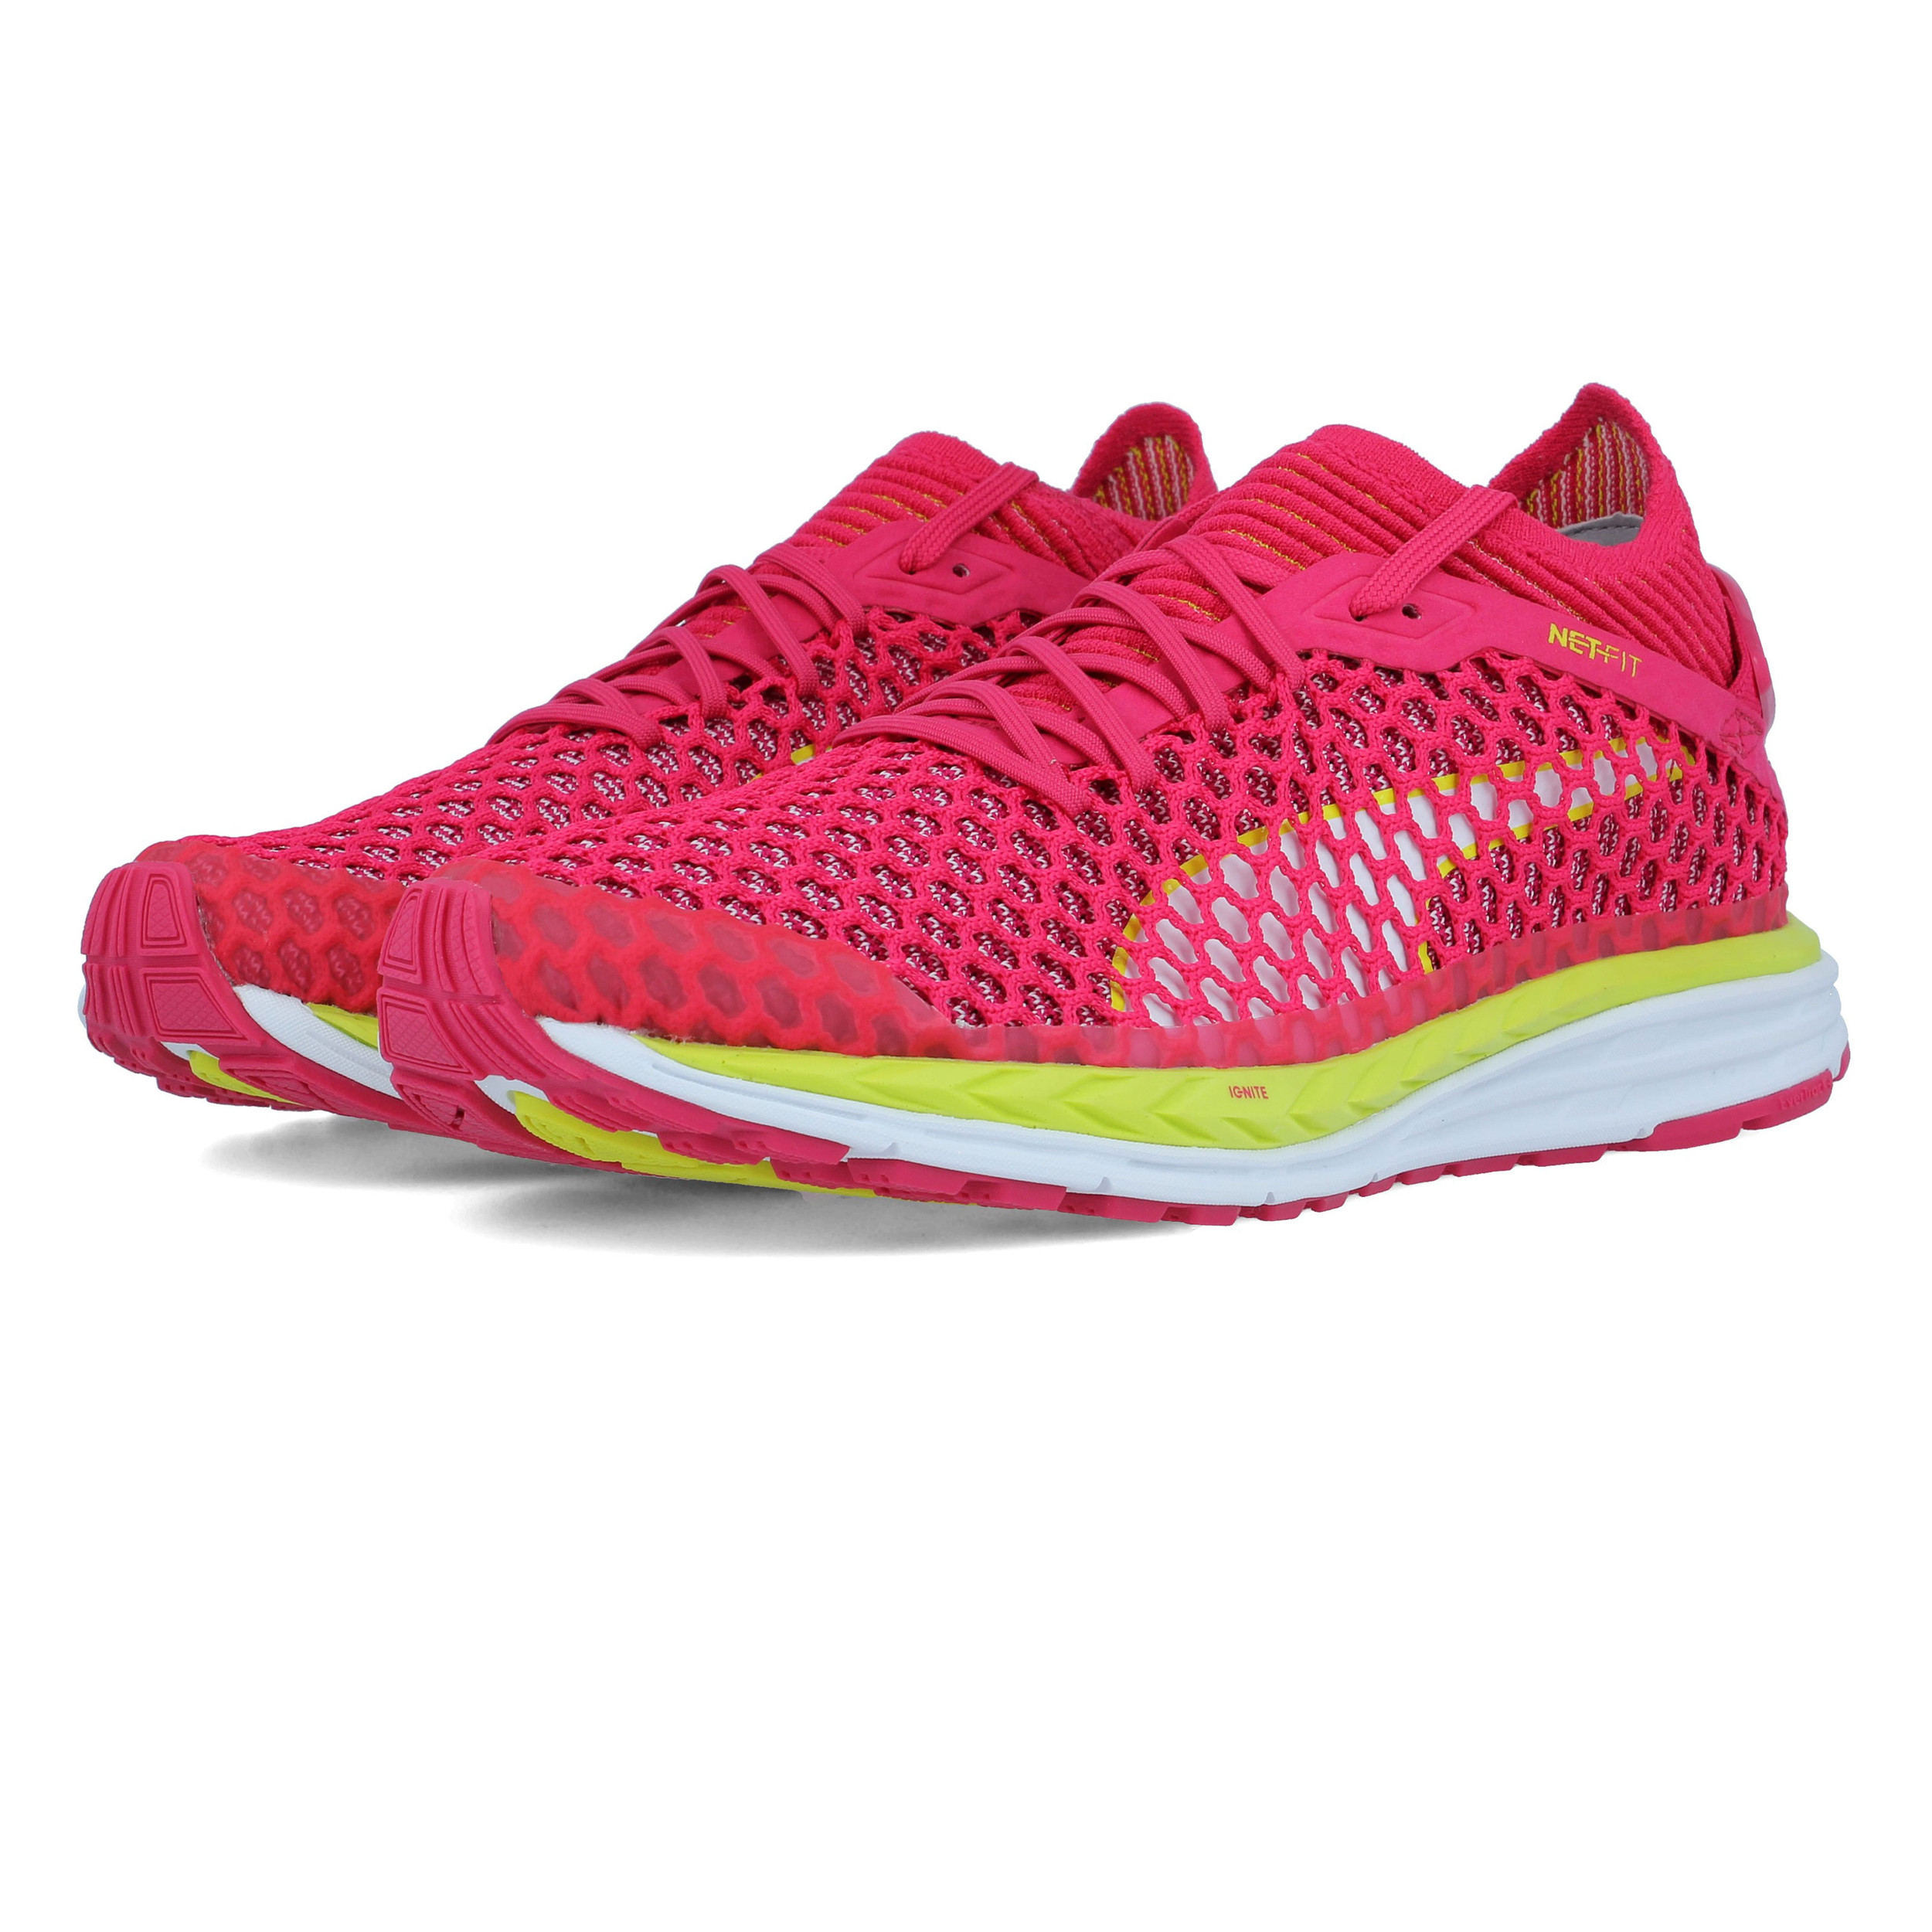 1f4f5db85f9 Details about Puma Womens Speed IGNITE Netfit Running Shoes Trainers  Sneakers Pink White